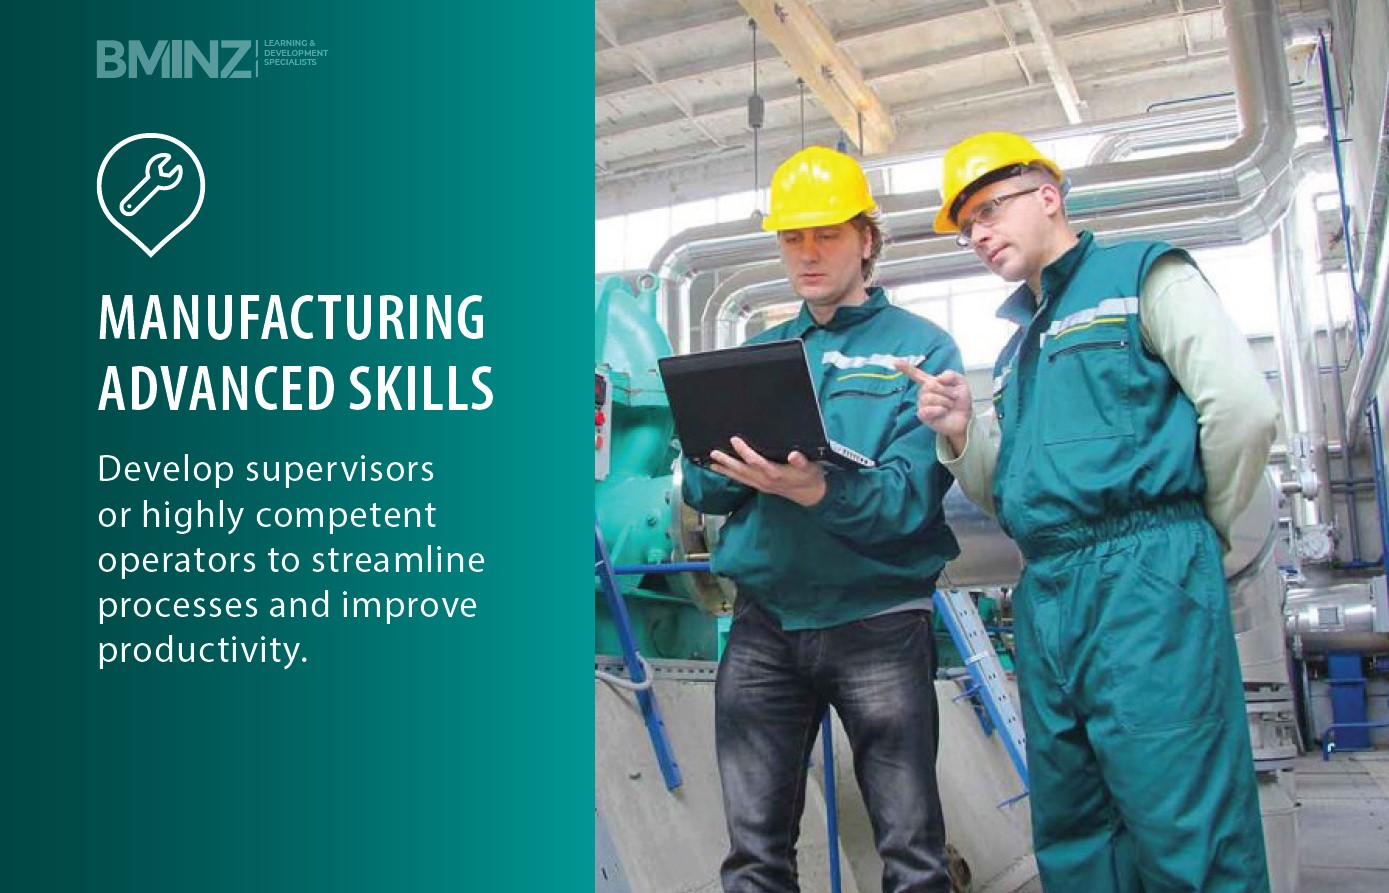 MANUFACTURING ADVANCED SKILLS: Develop supervisors or highly competent operators to streamline processes and improve productivity.